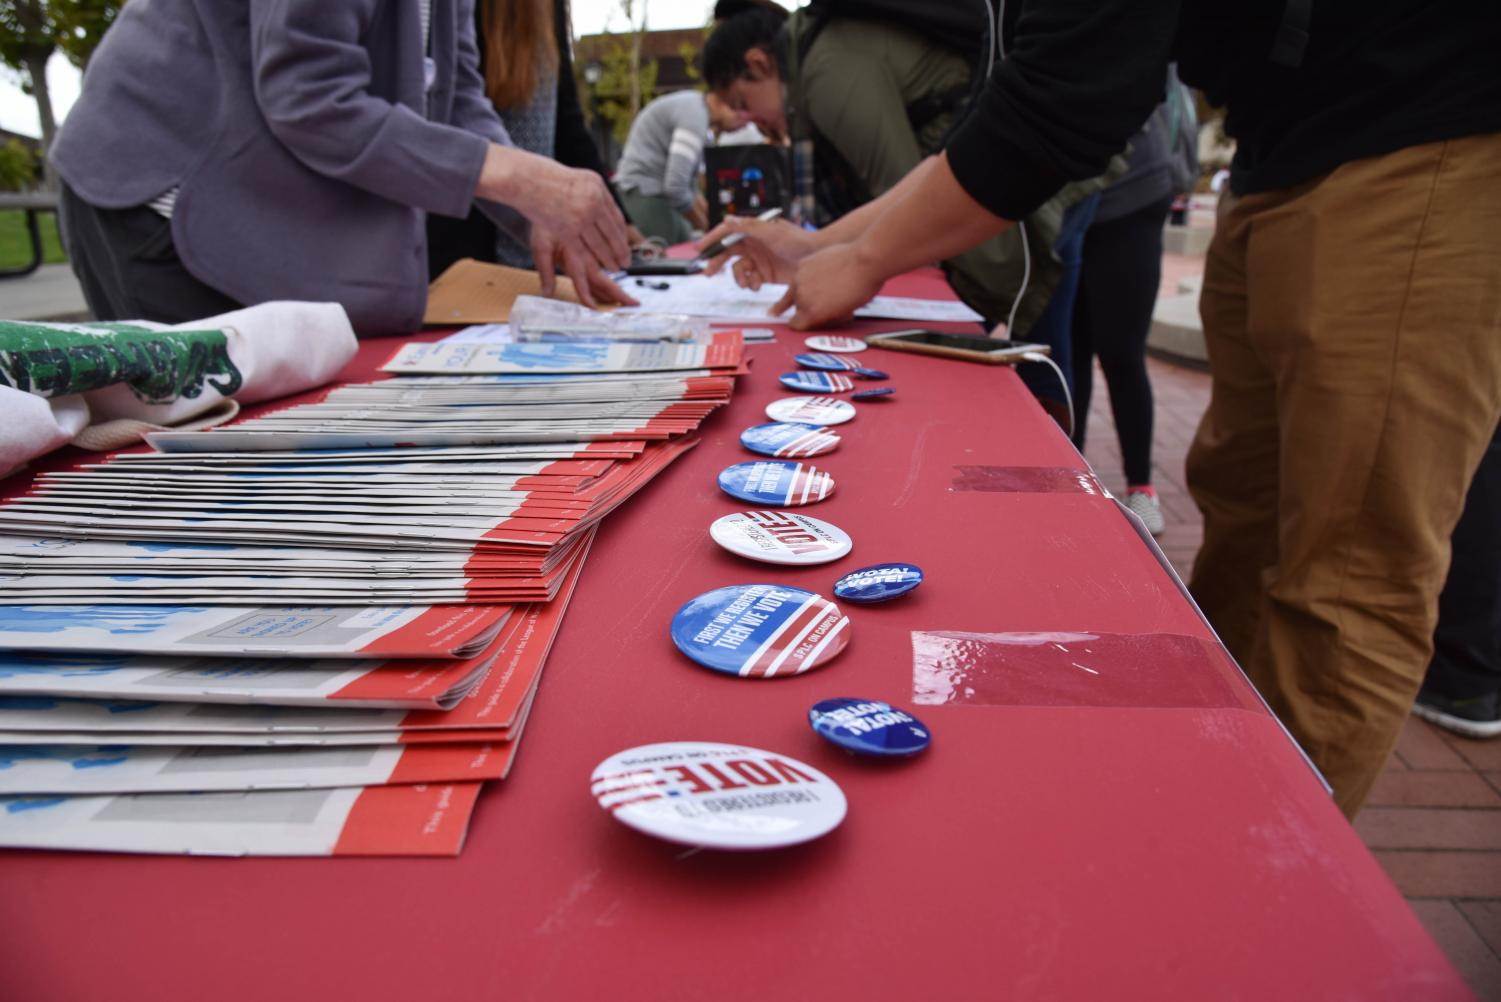 Students+had+an+opportunity+to+register+to+vote+at+Club+Day.